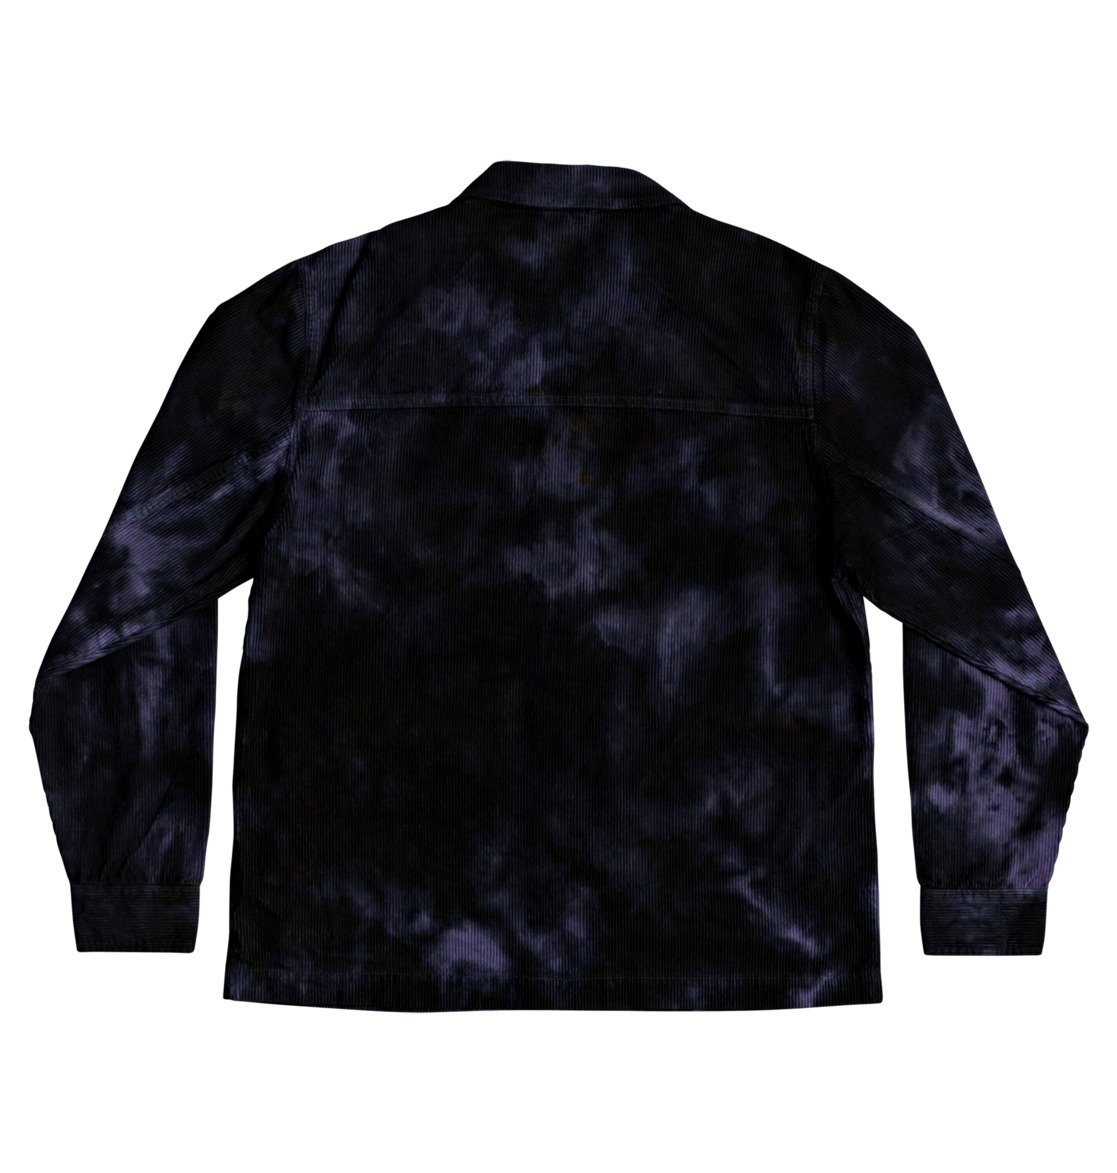 КУРТКА WORKMAN JACKET M JCKT BTLW Темно-синий